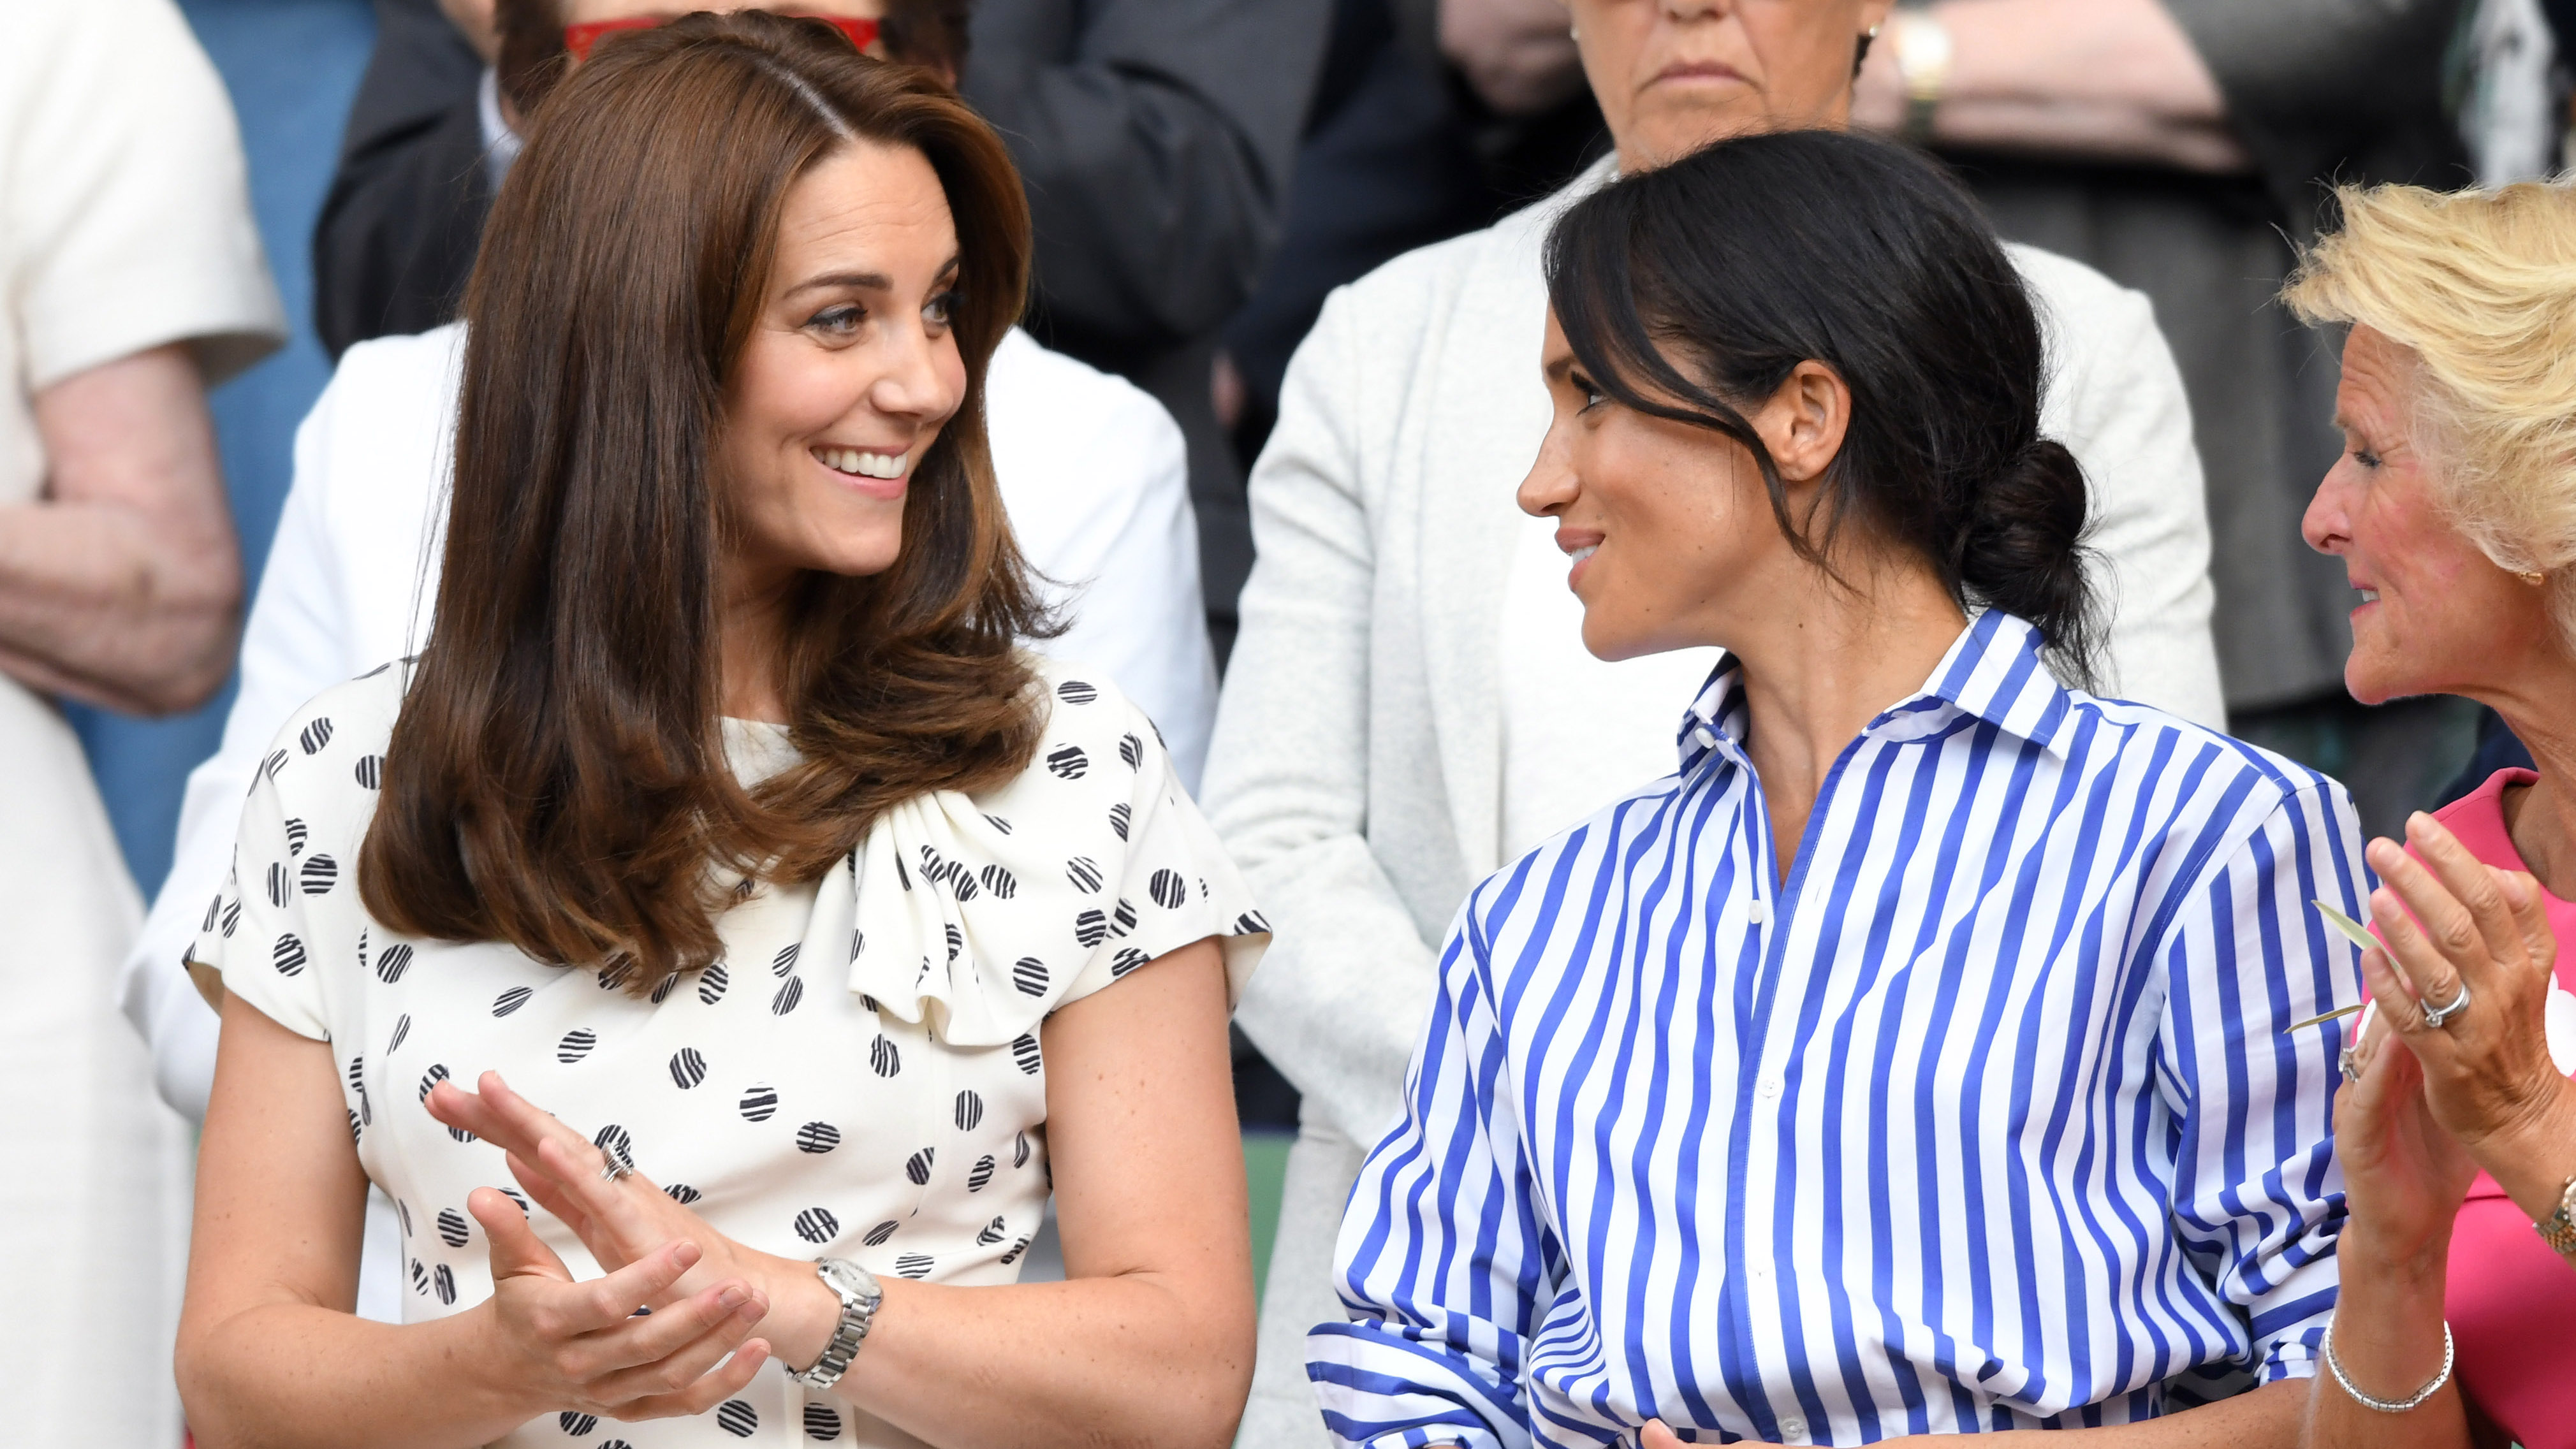 cd816a6f4b9 New Poll Suggests Kate Middleton Has Better Style Than Meghan Markle